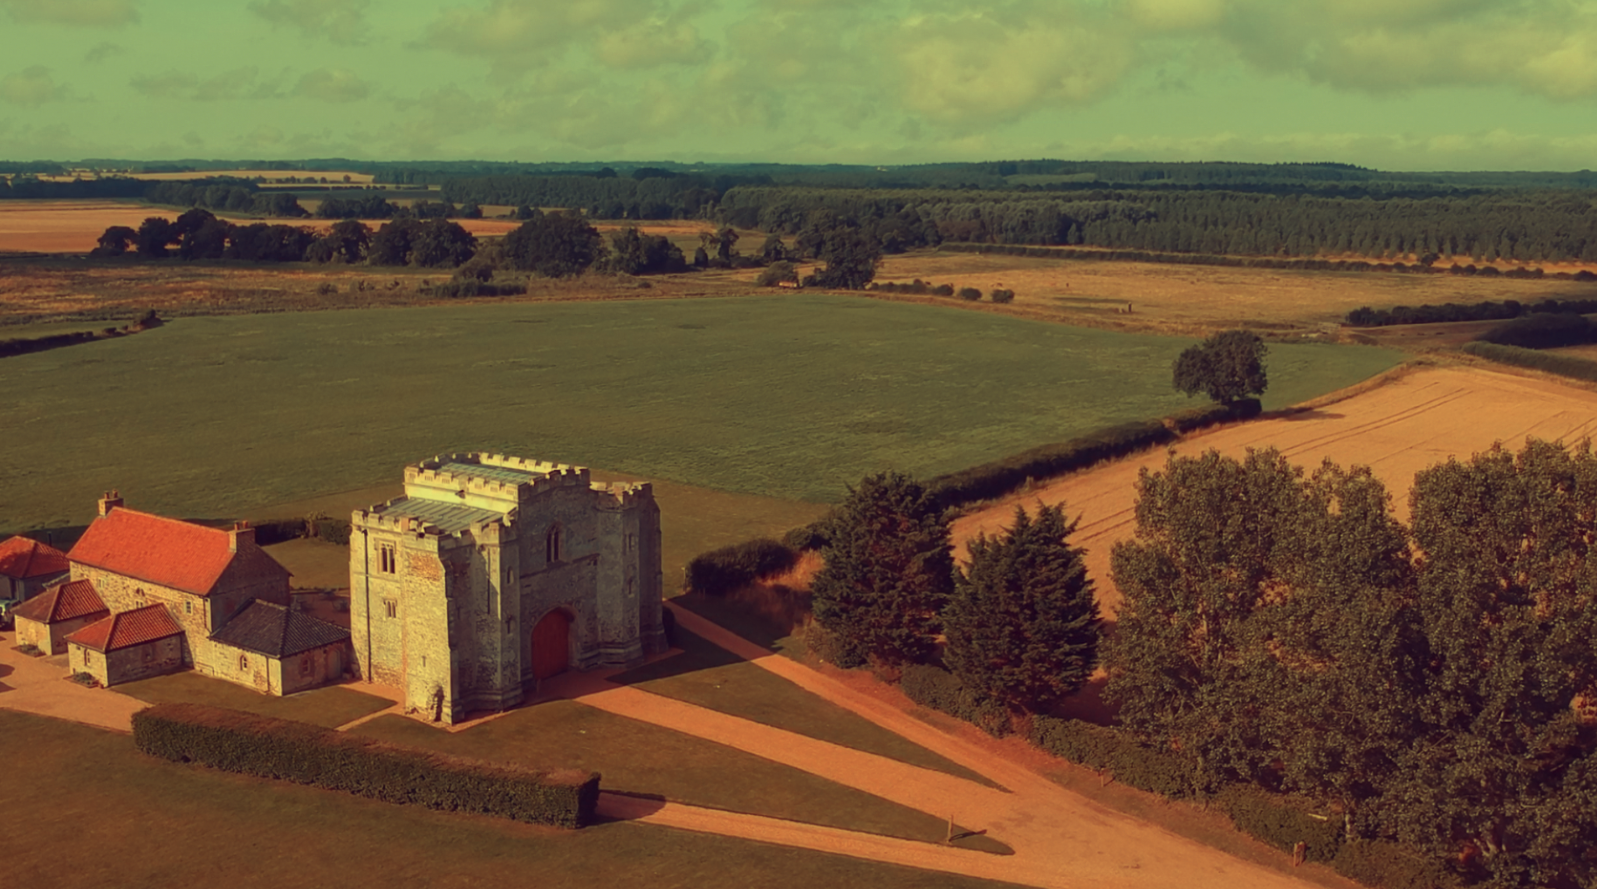 Image: The drone capturing some of Pentney from above.